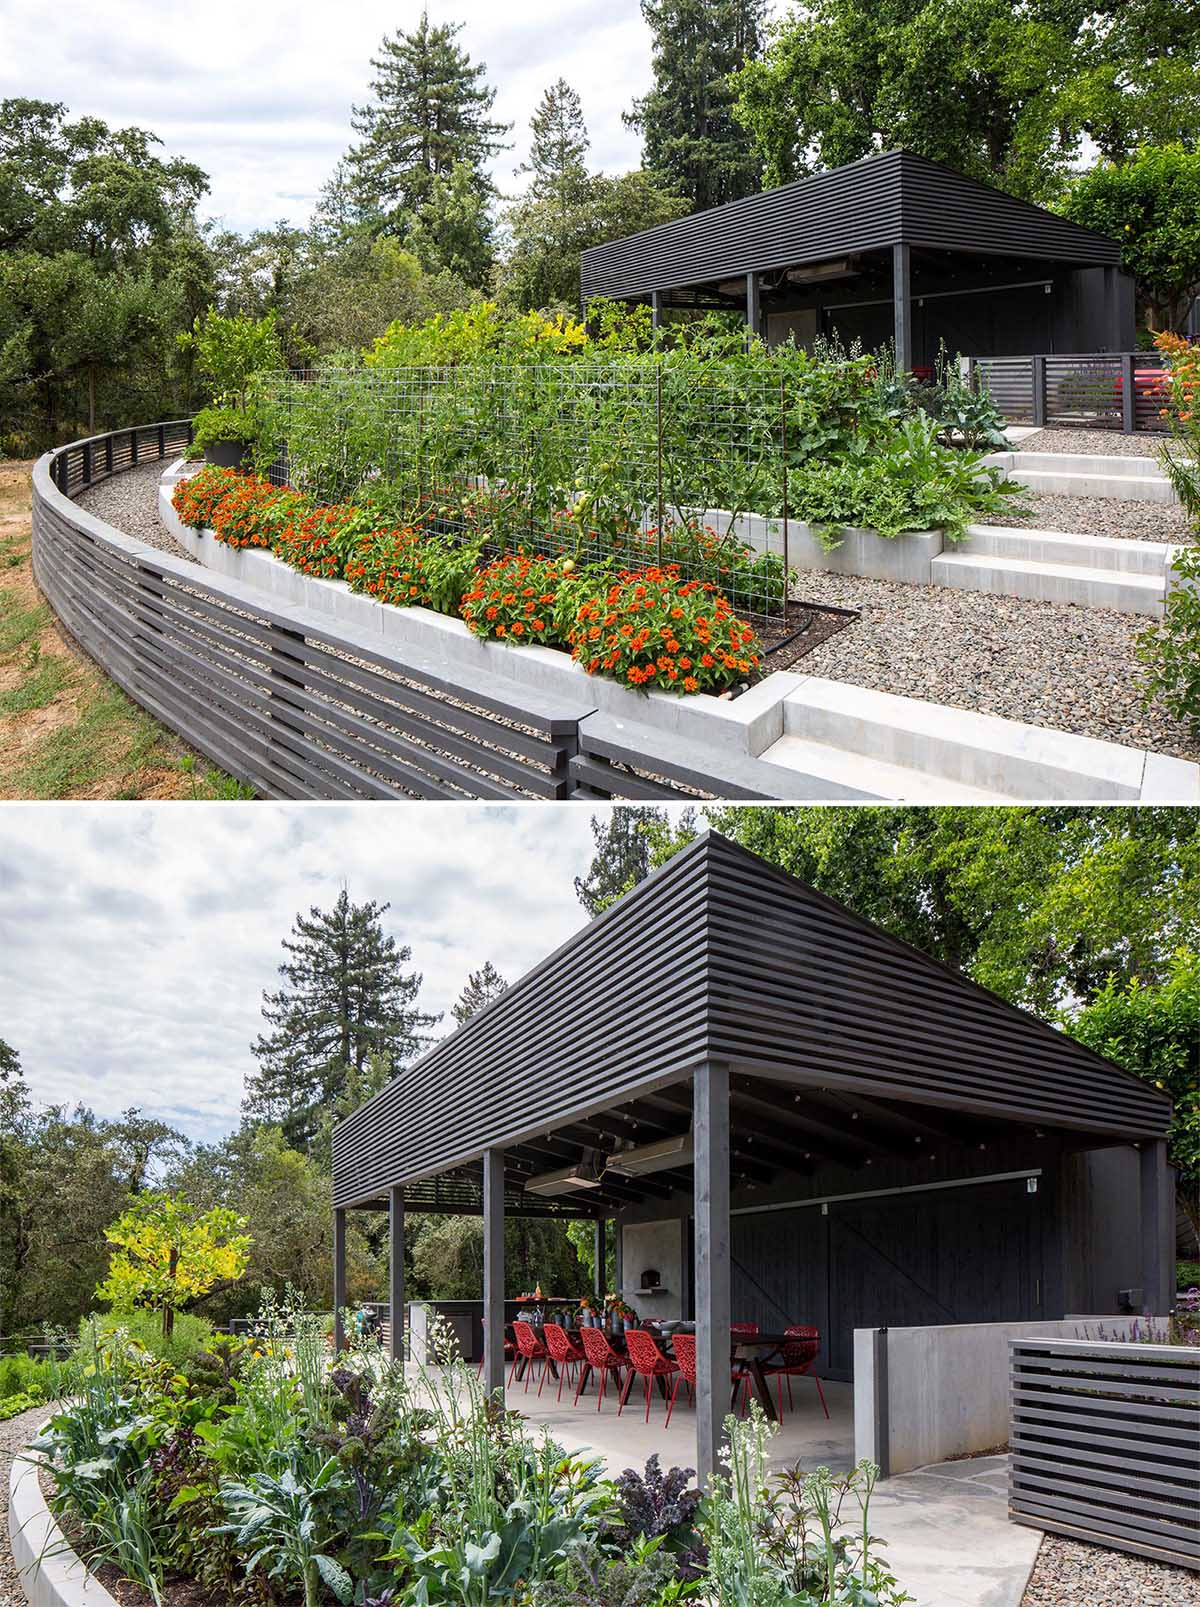 A modern garden with an covered outdoor dining area and terraced built-in planters made from concrete.